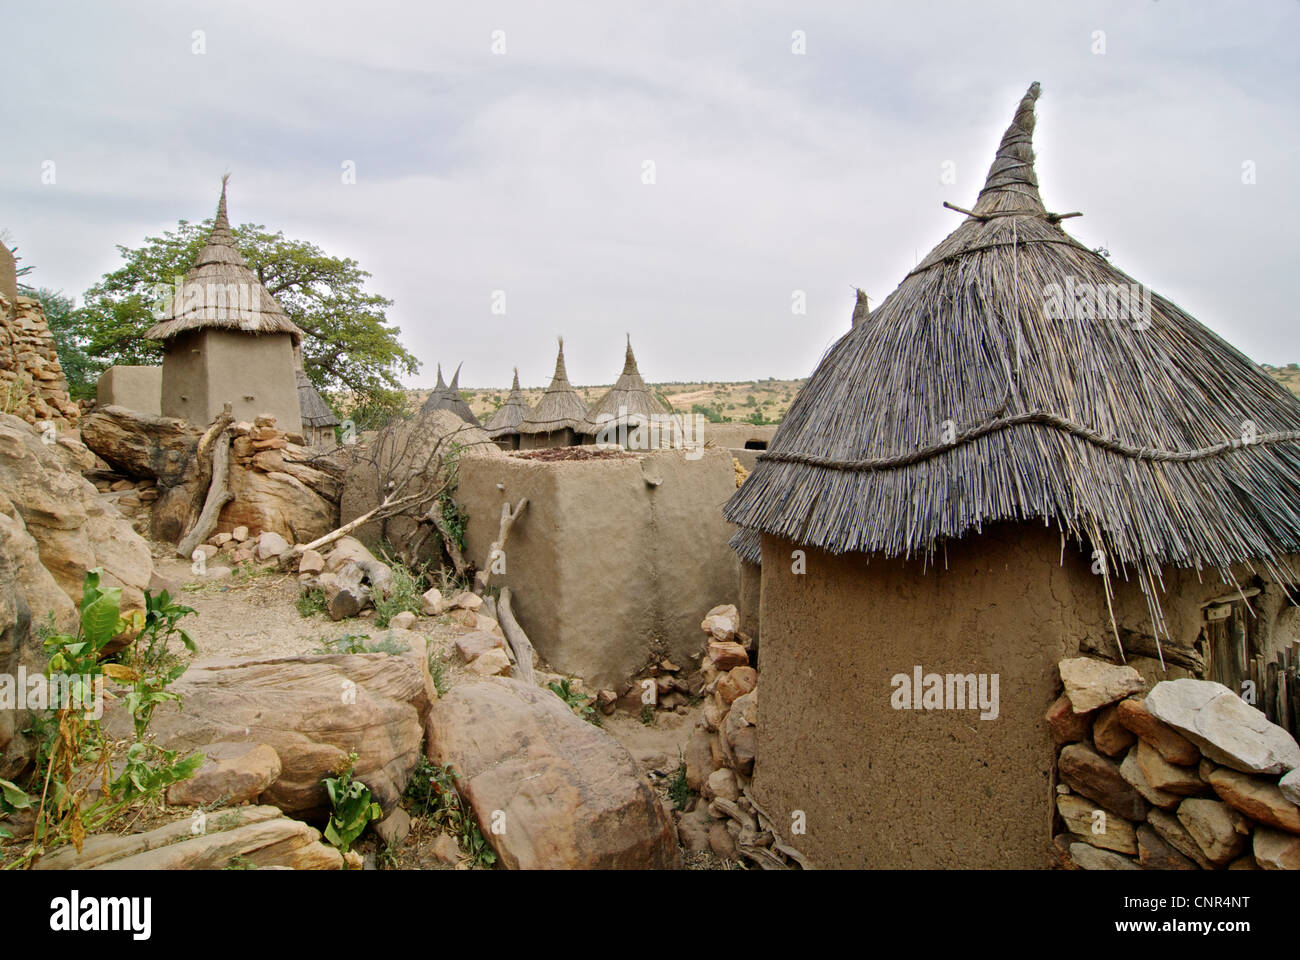 mud and straw houses stockfotos mud and straw houses. Black Bedroom Furniture Sets. Home Design Ideas